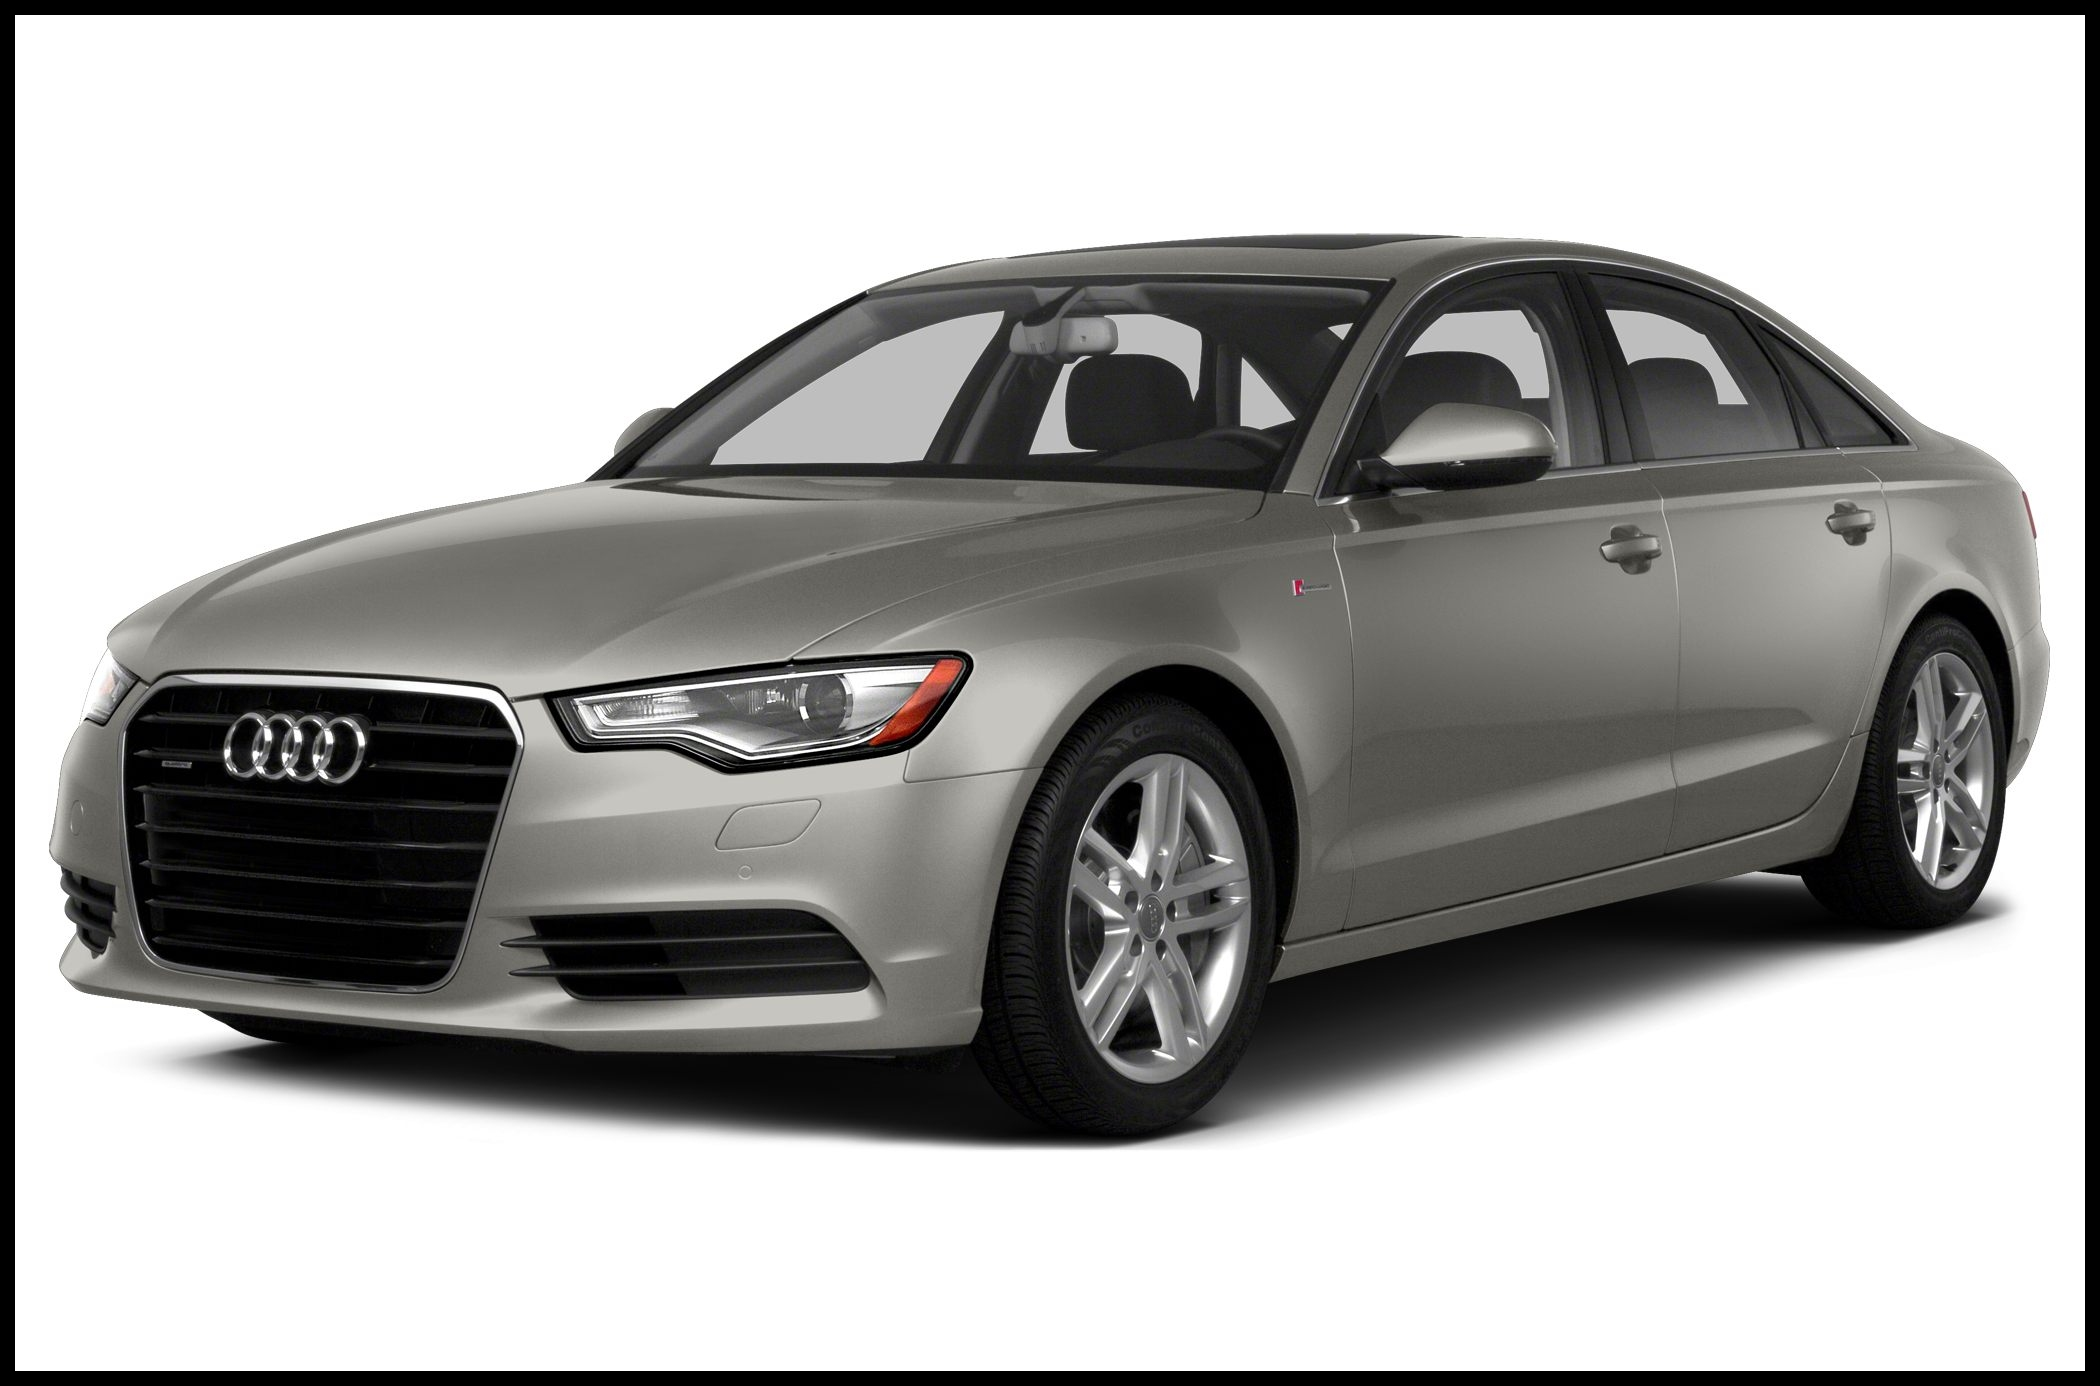 2015 Audi A6 3 0T Premium Plus 4dr All wheel Drive quattro Sedan Safety Features